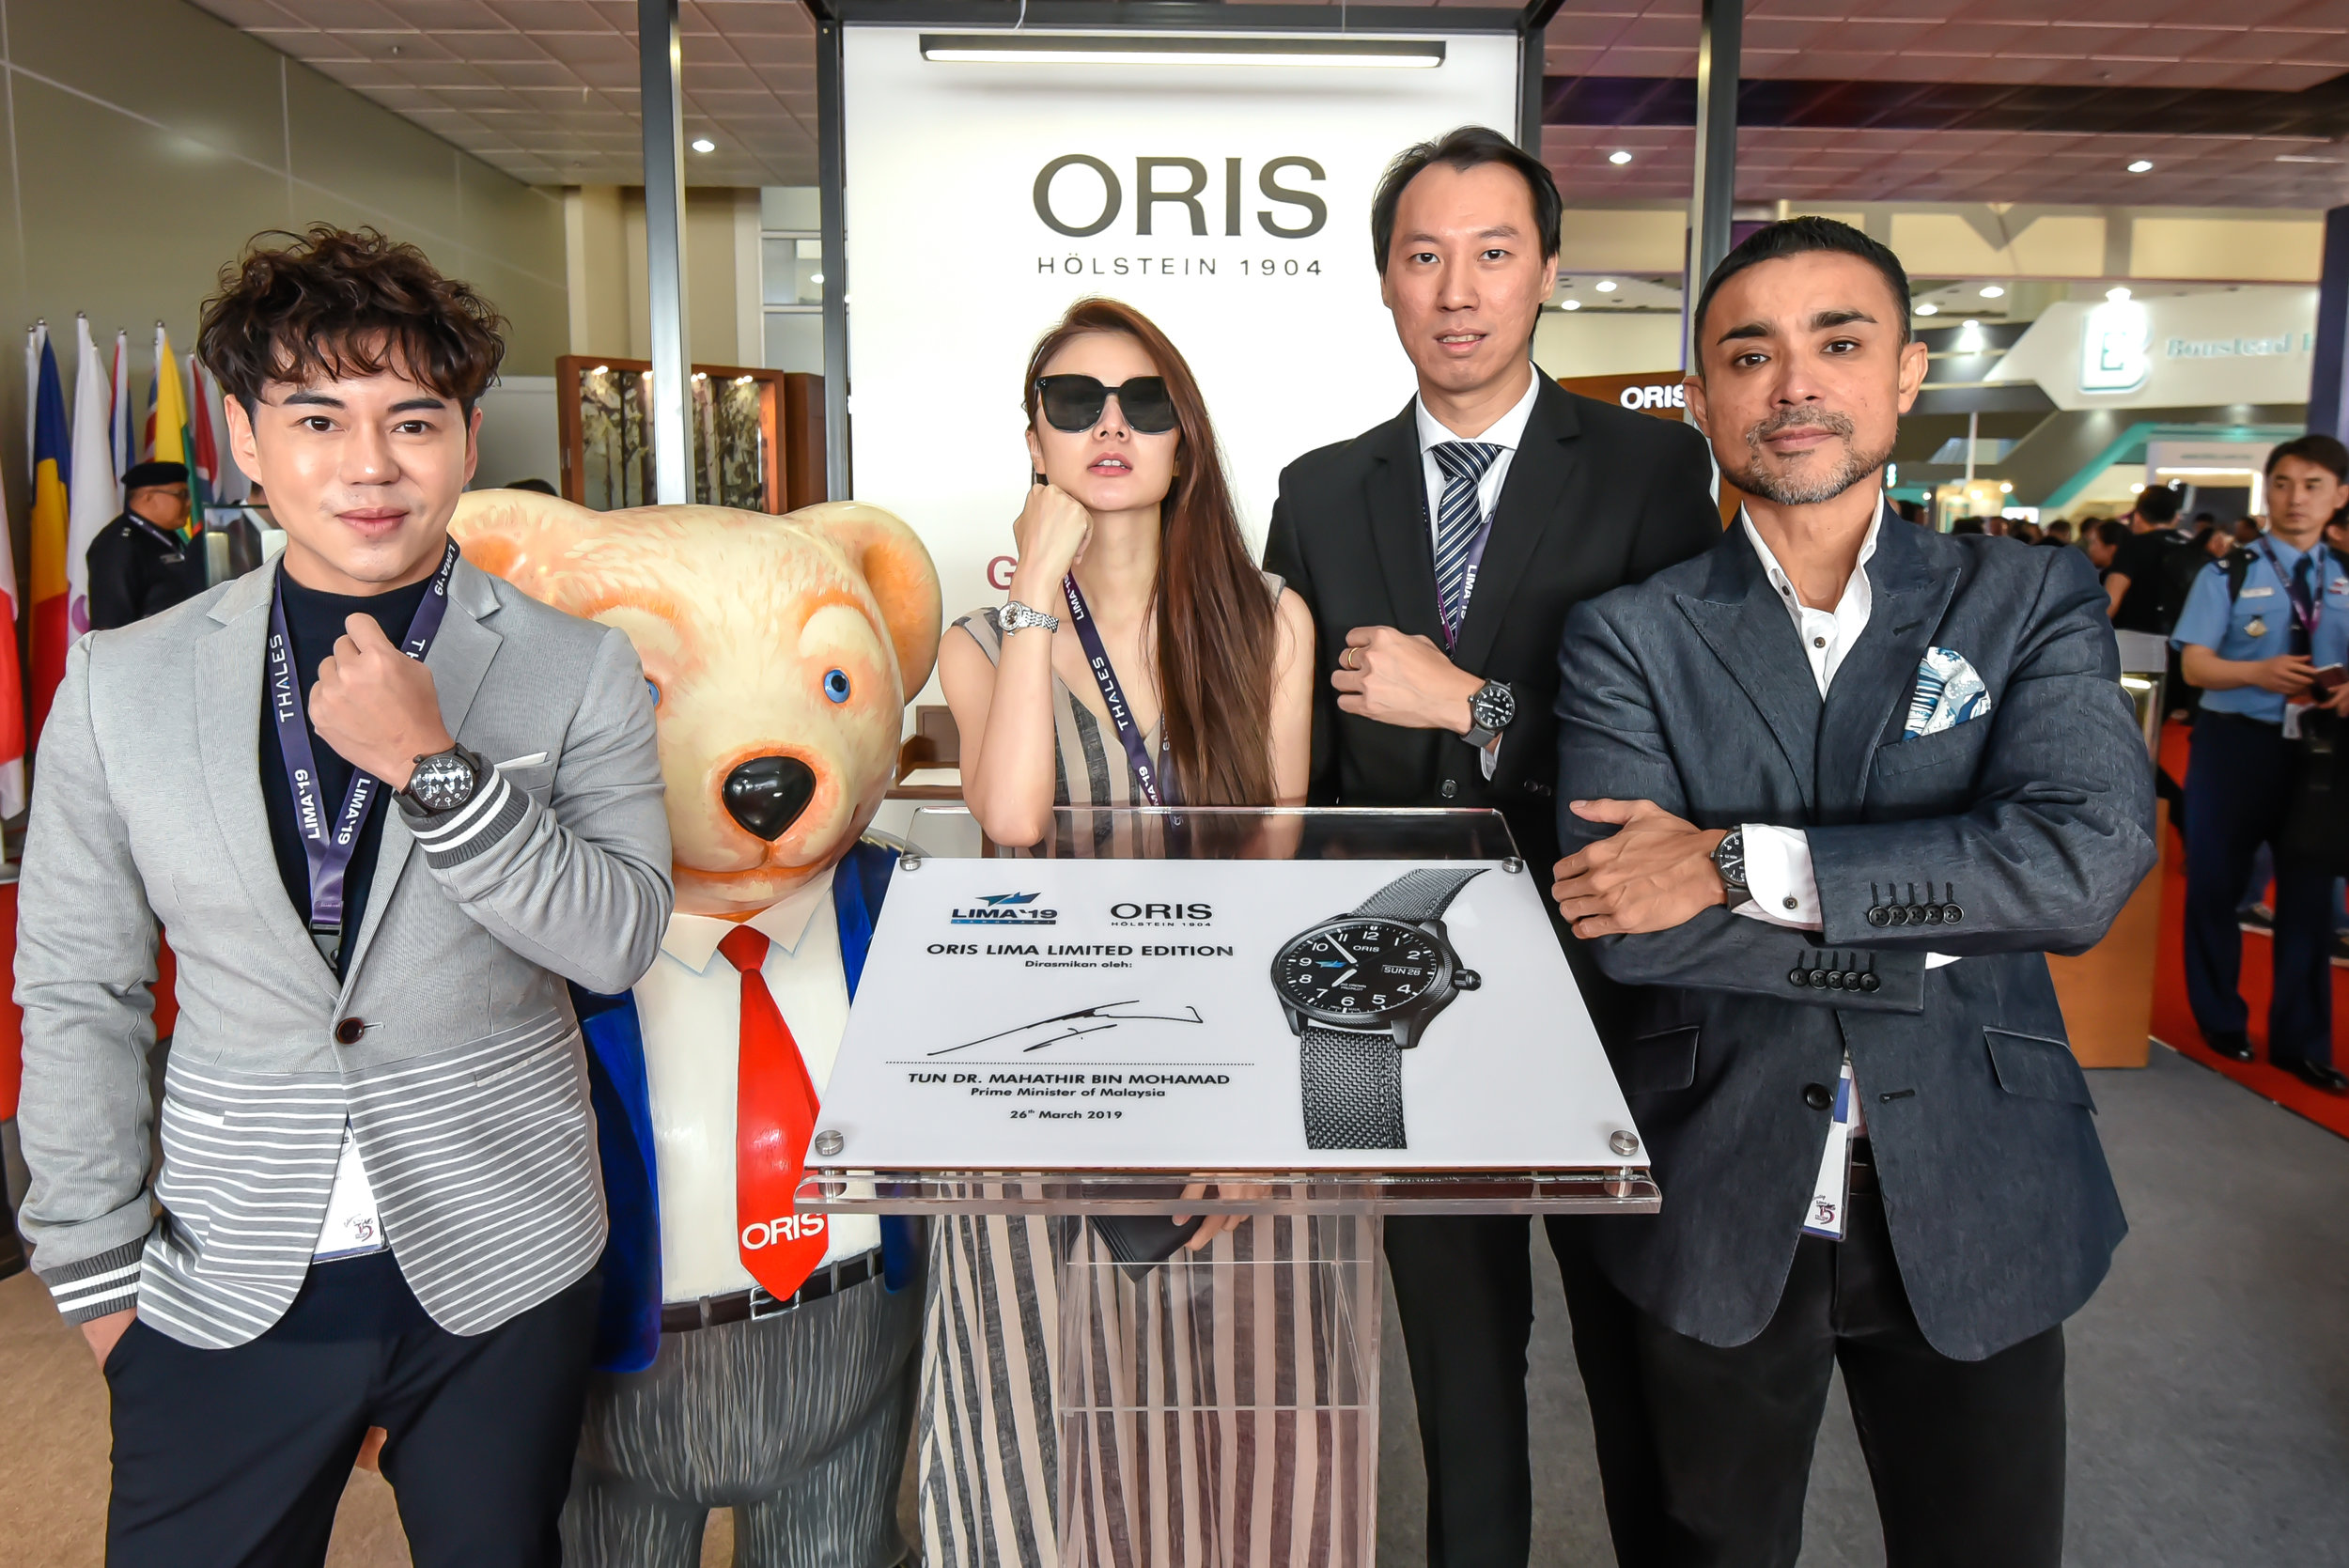 Celebrities and Friends of Oris posing with the Oris Plaque, signed by the Prime Minister of Malaysia, Tun Dr. Mahathir bin Mohamad.